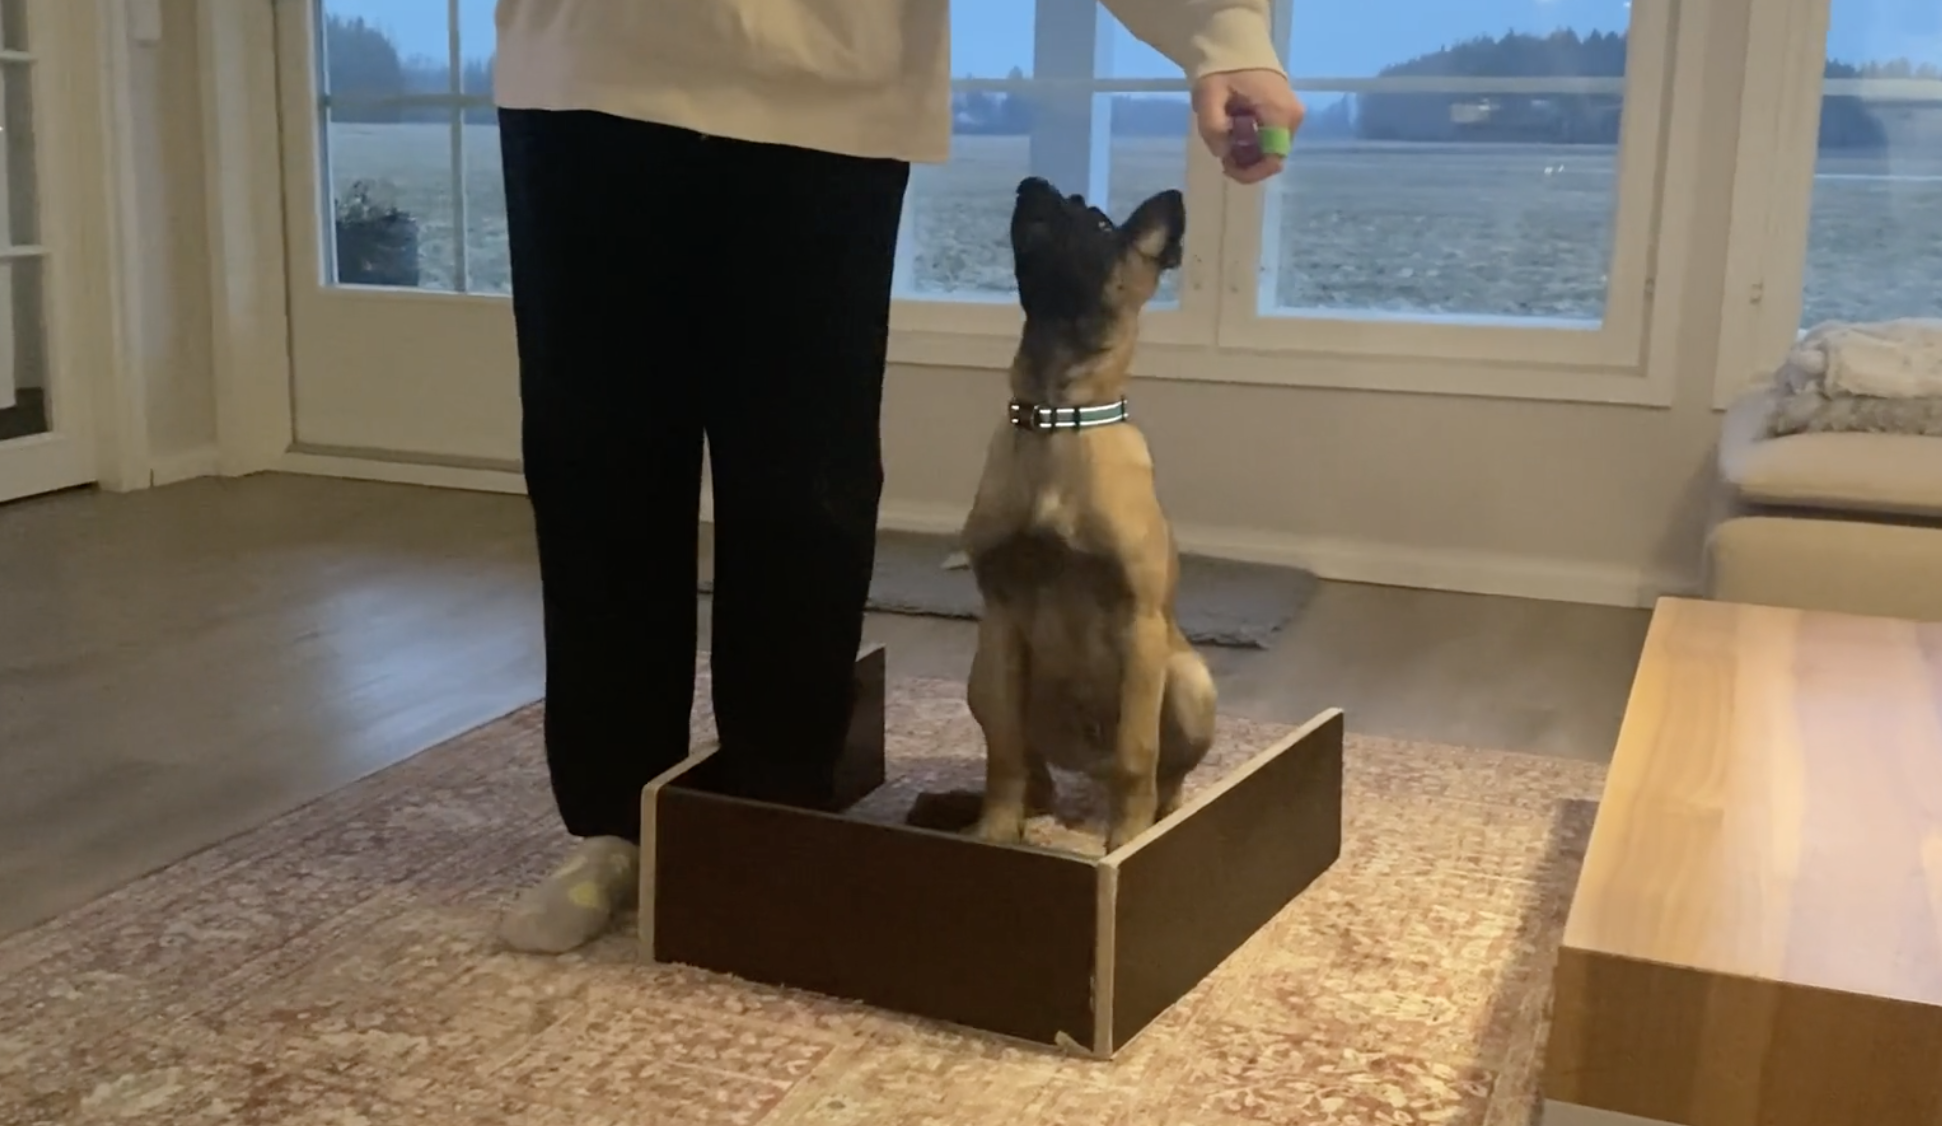 IGP puppy learning sit from motion